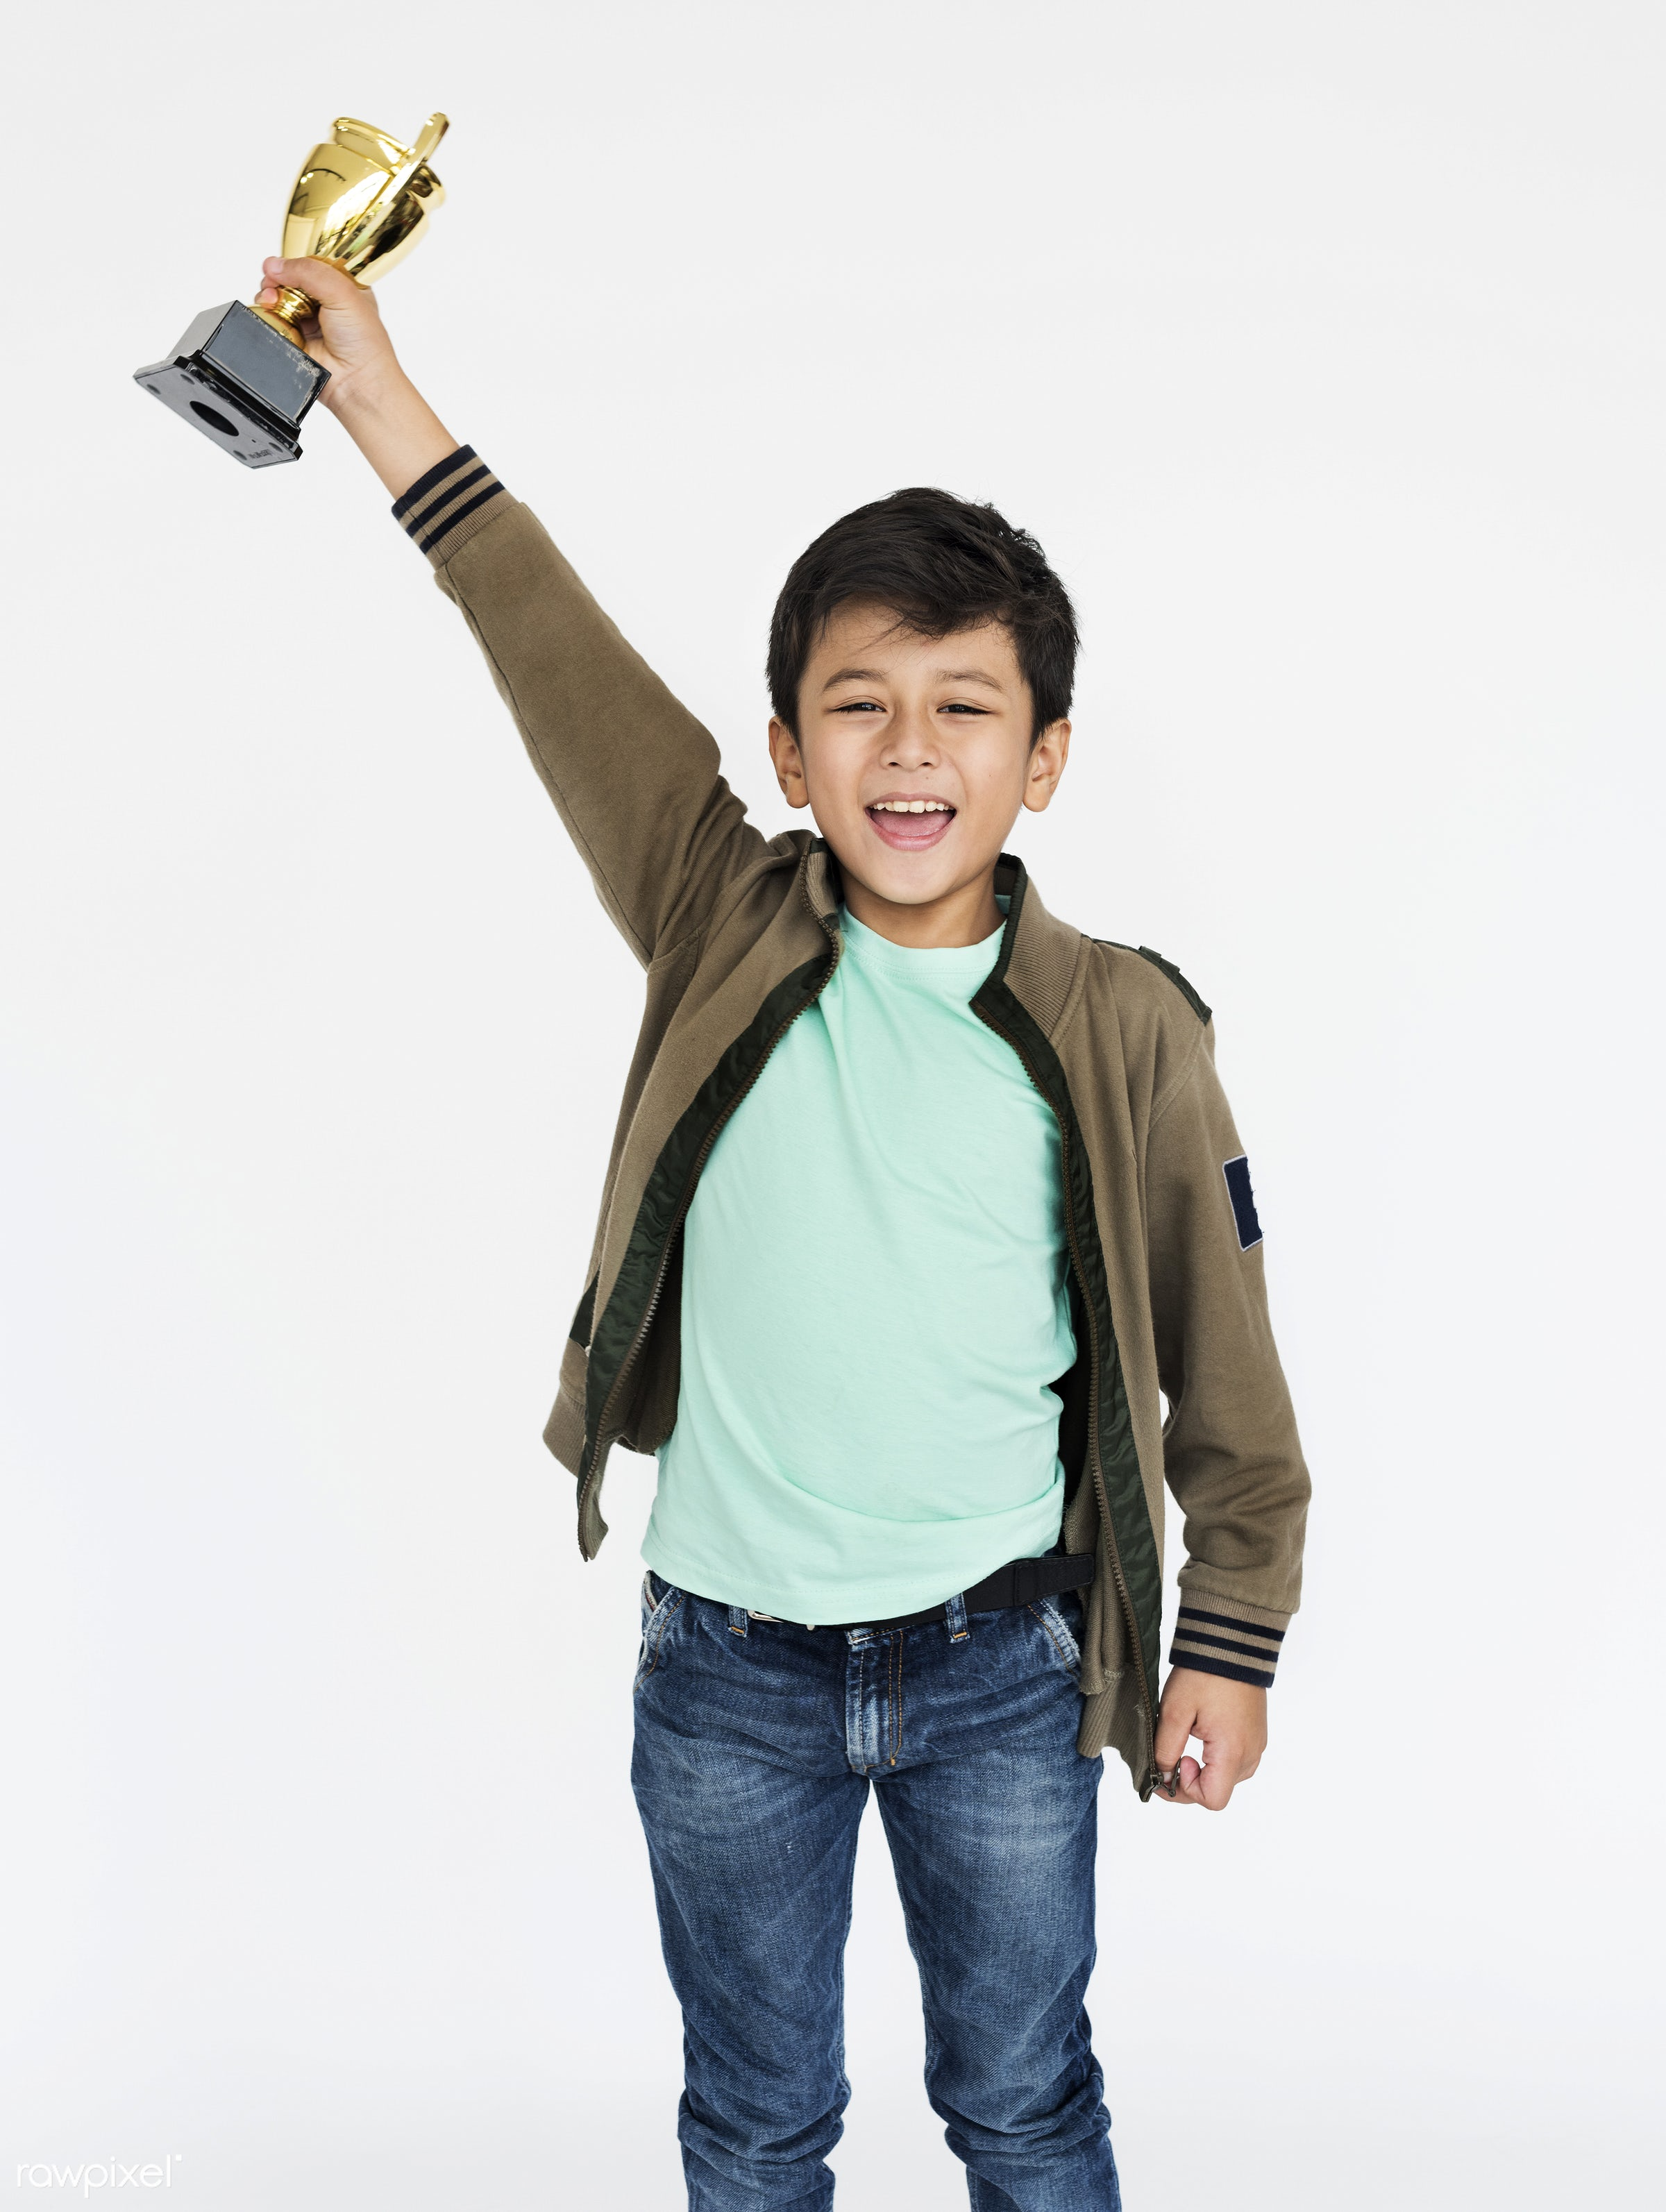 studio, expression, person, award, winner, people, asian, kid, student, relaxed, teenager, smile, cheerful, smiling,...